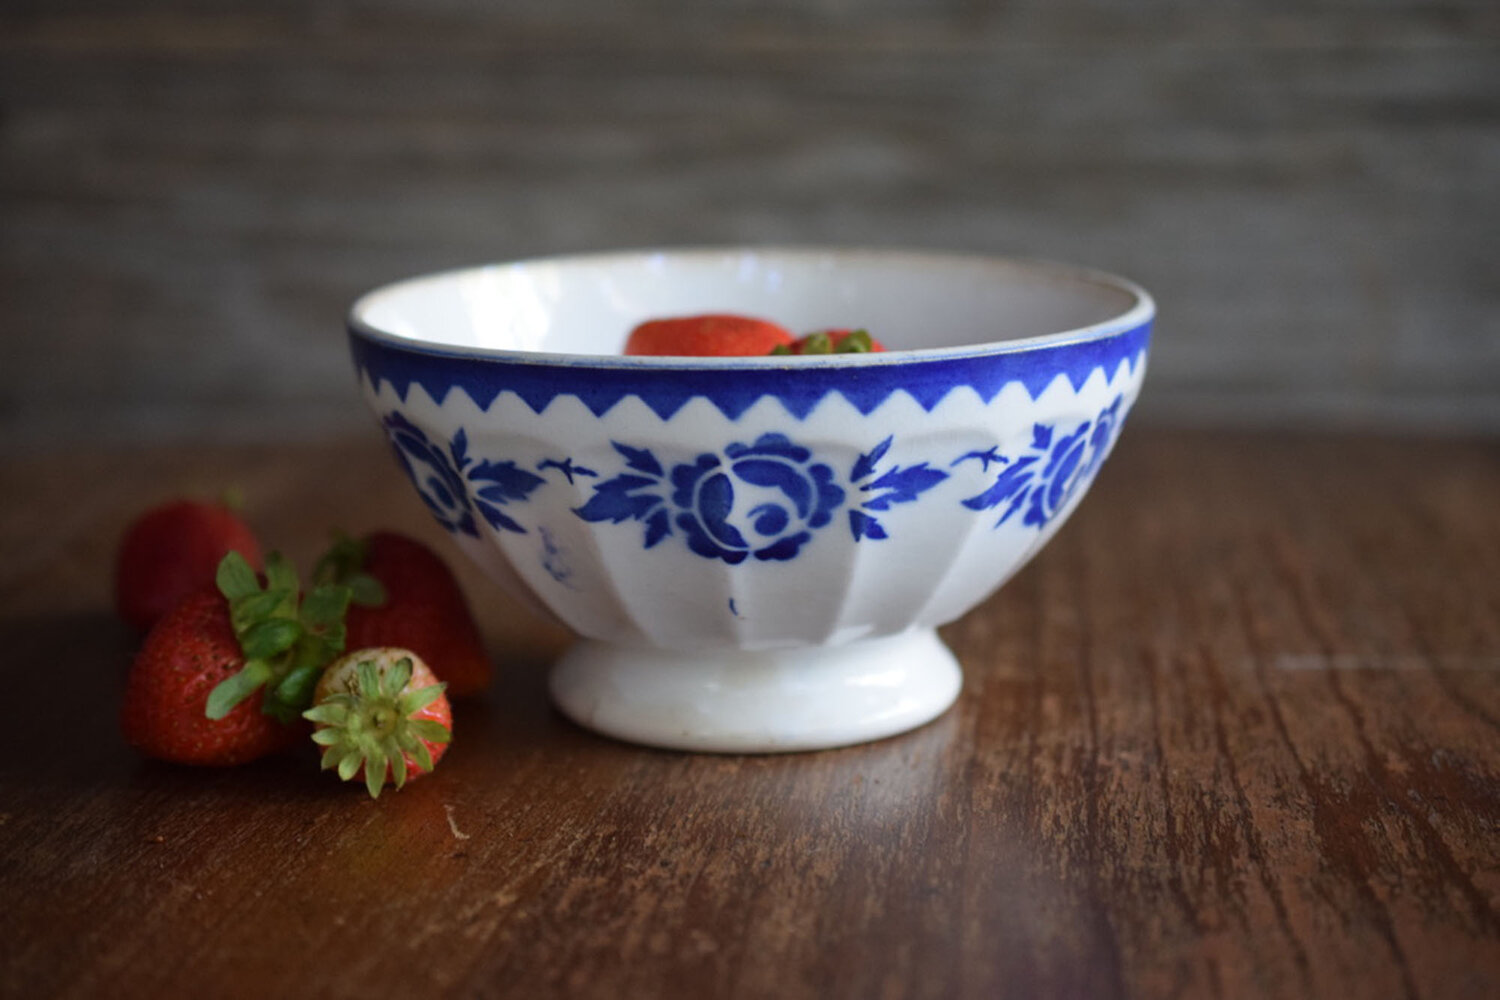 French vintage red and blue polka dot bowls French vintage coffee bowls Chauvigny porcelain cafe au lait bowls French country kitchen